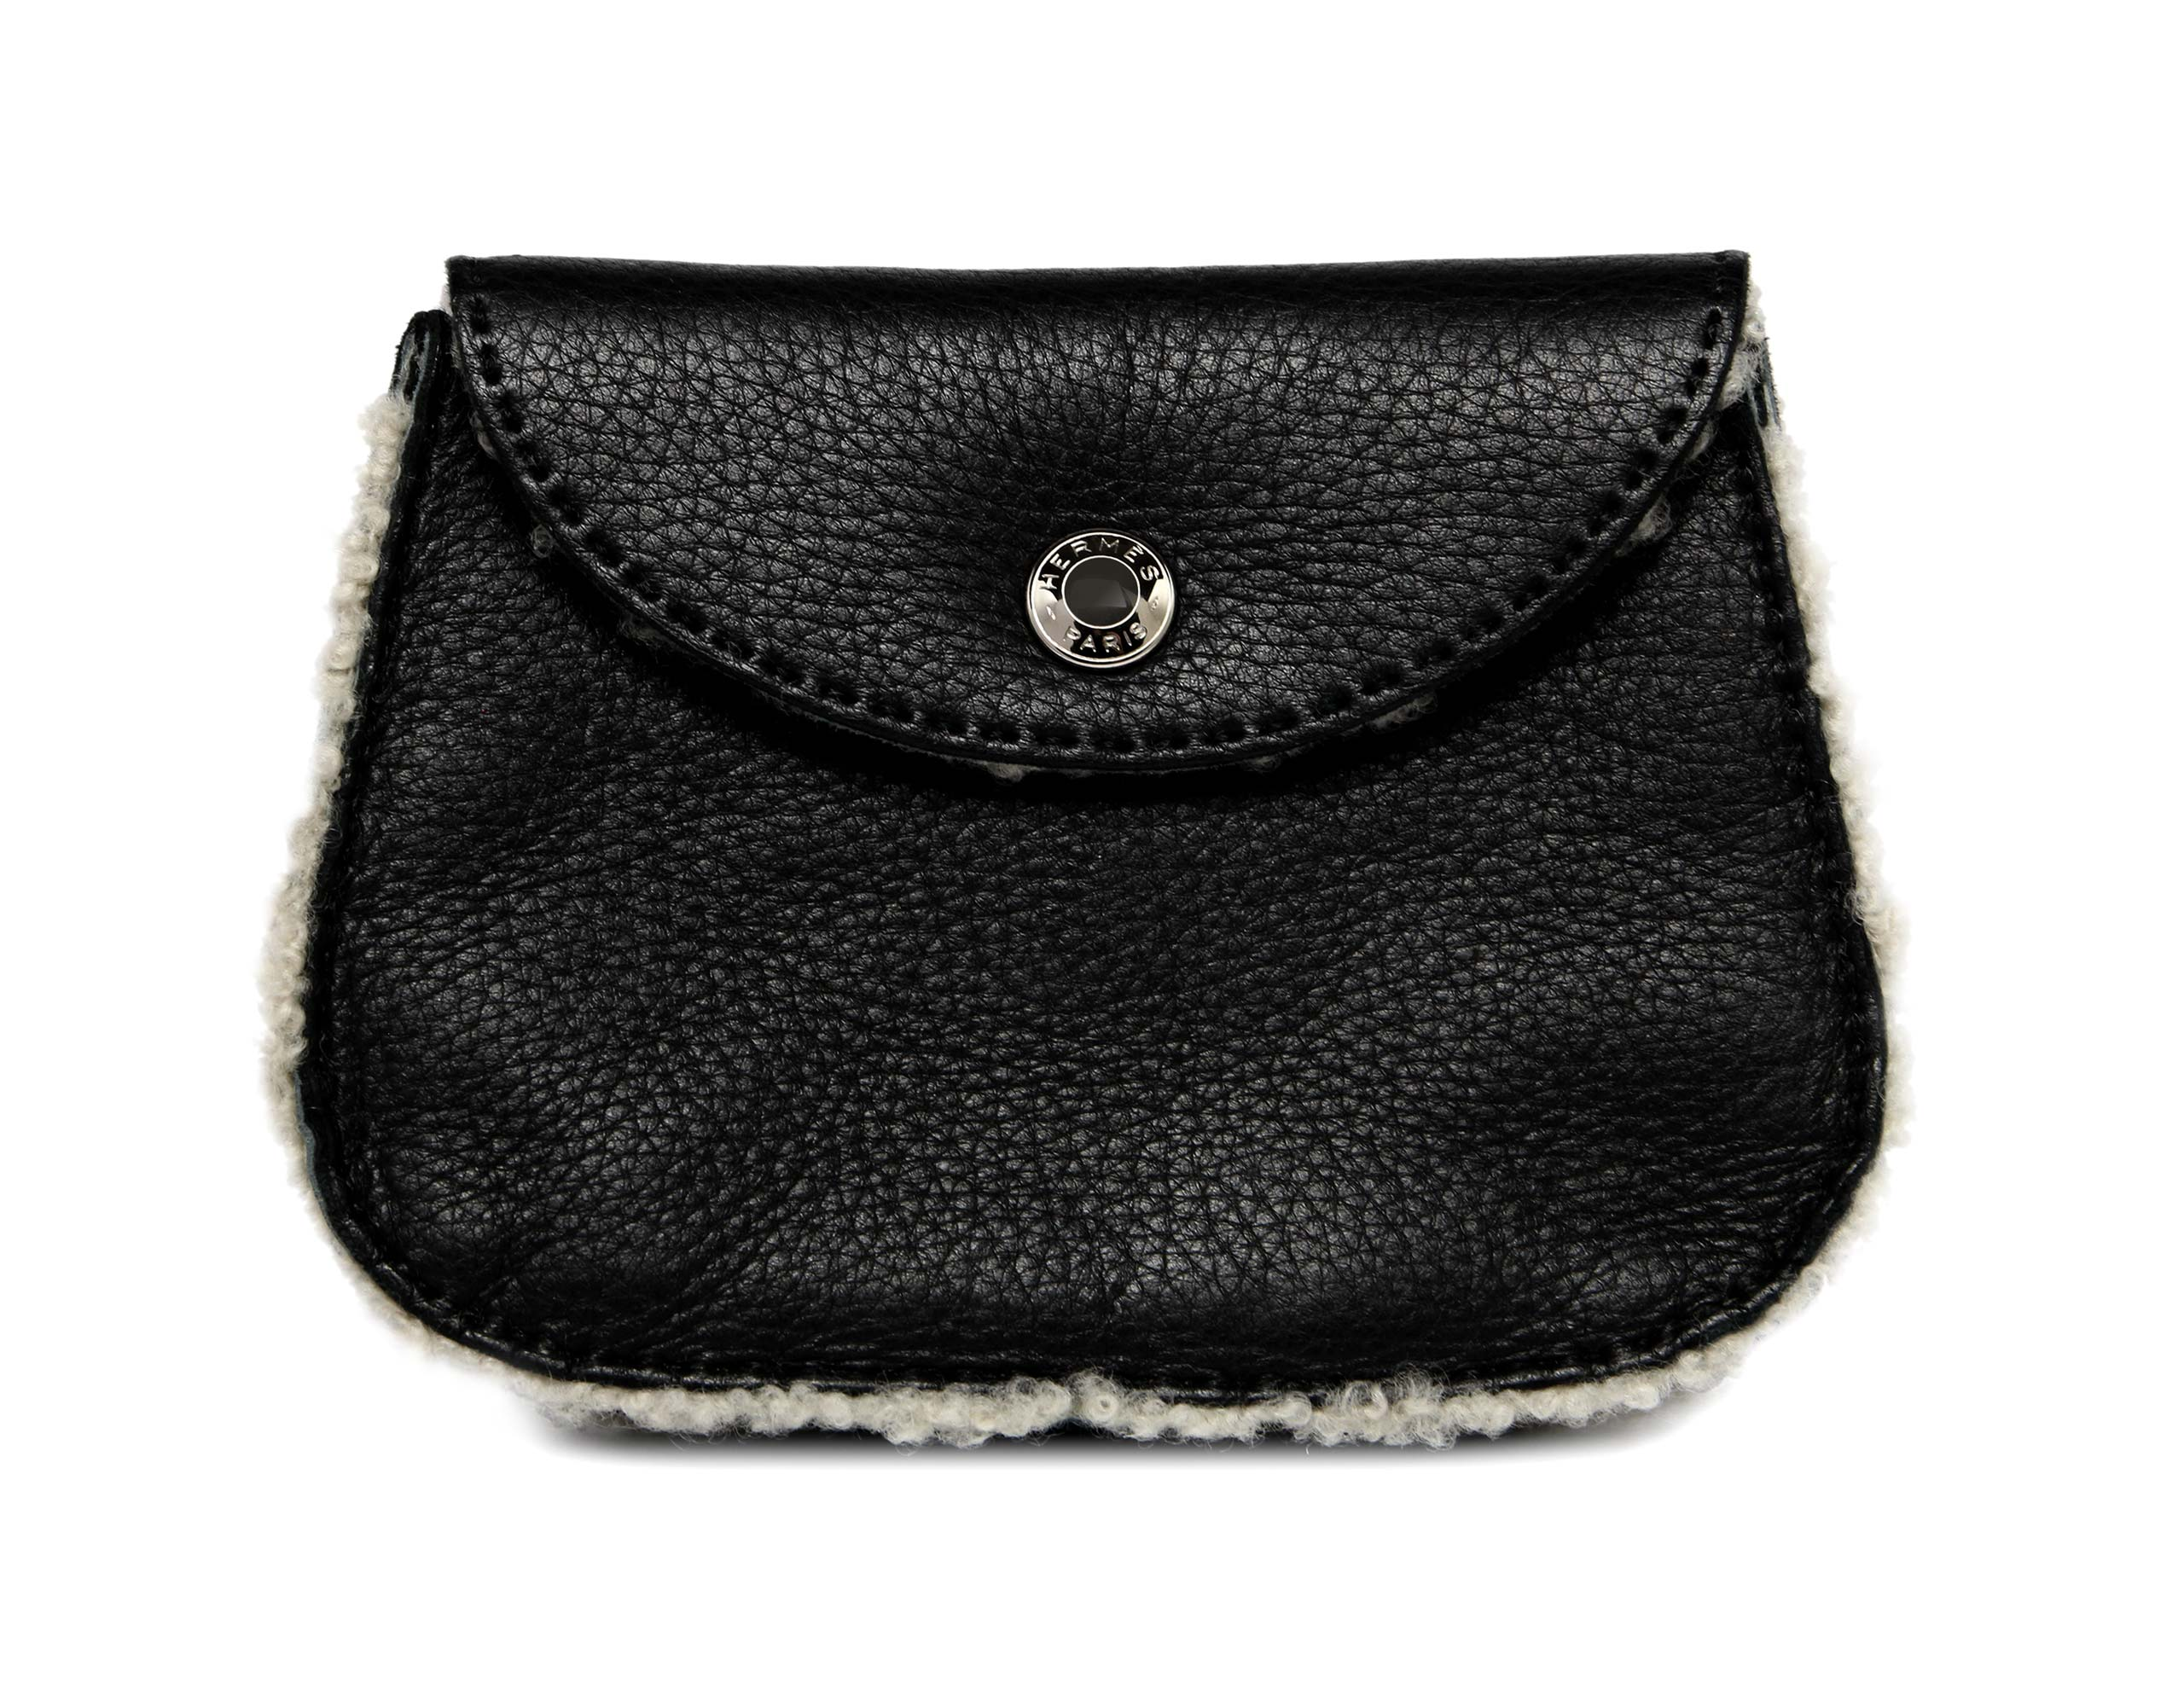 Shearling purse belt in black with palladium